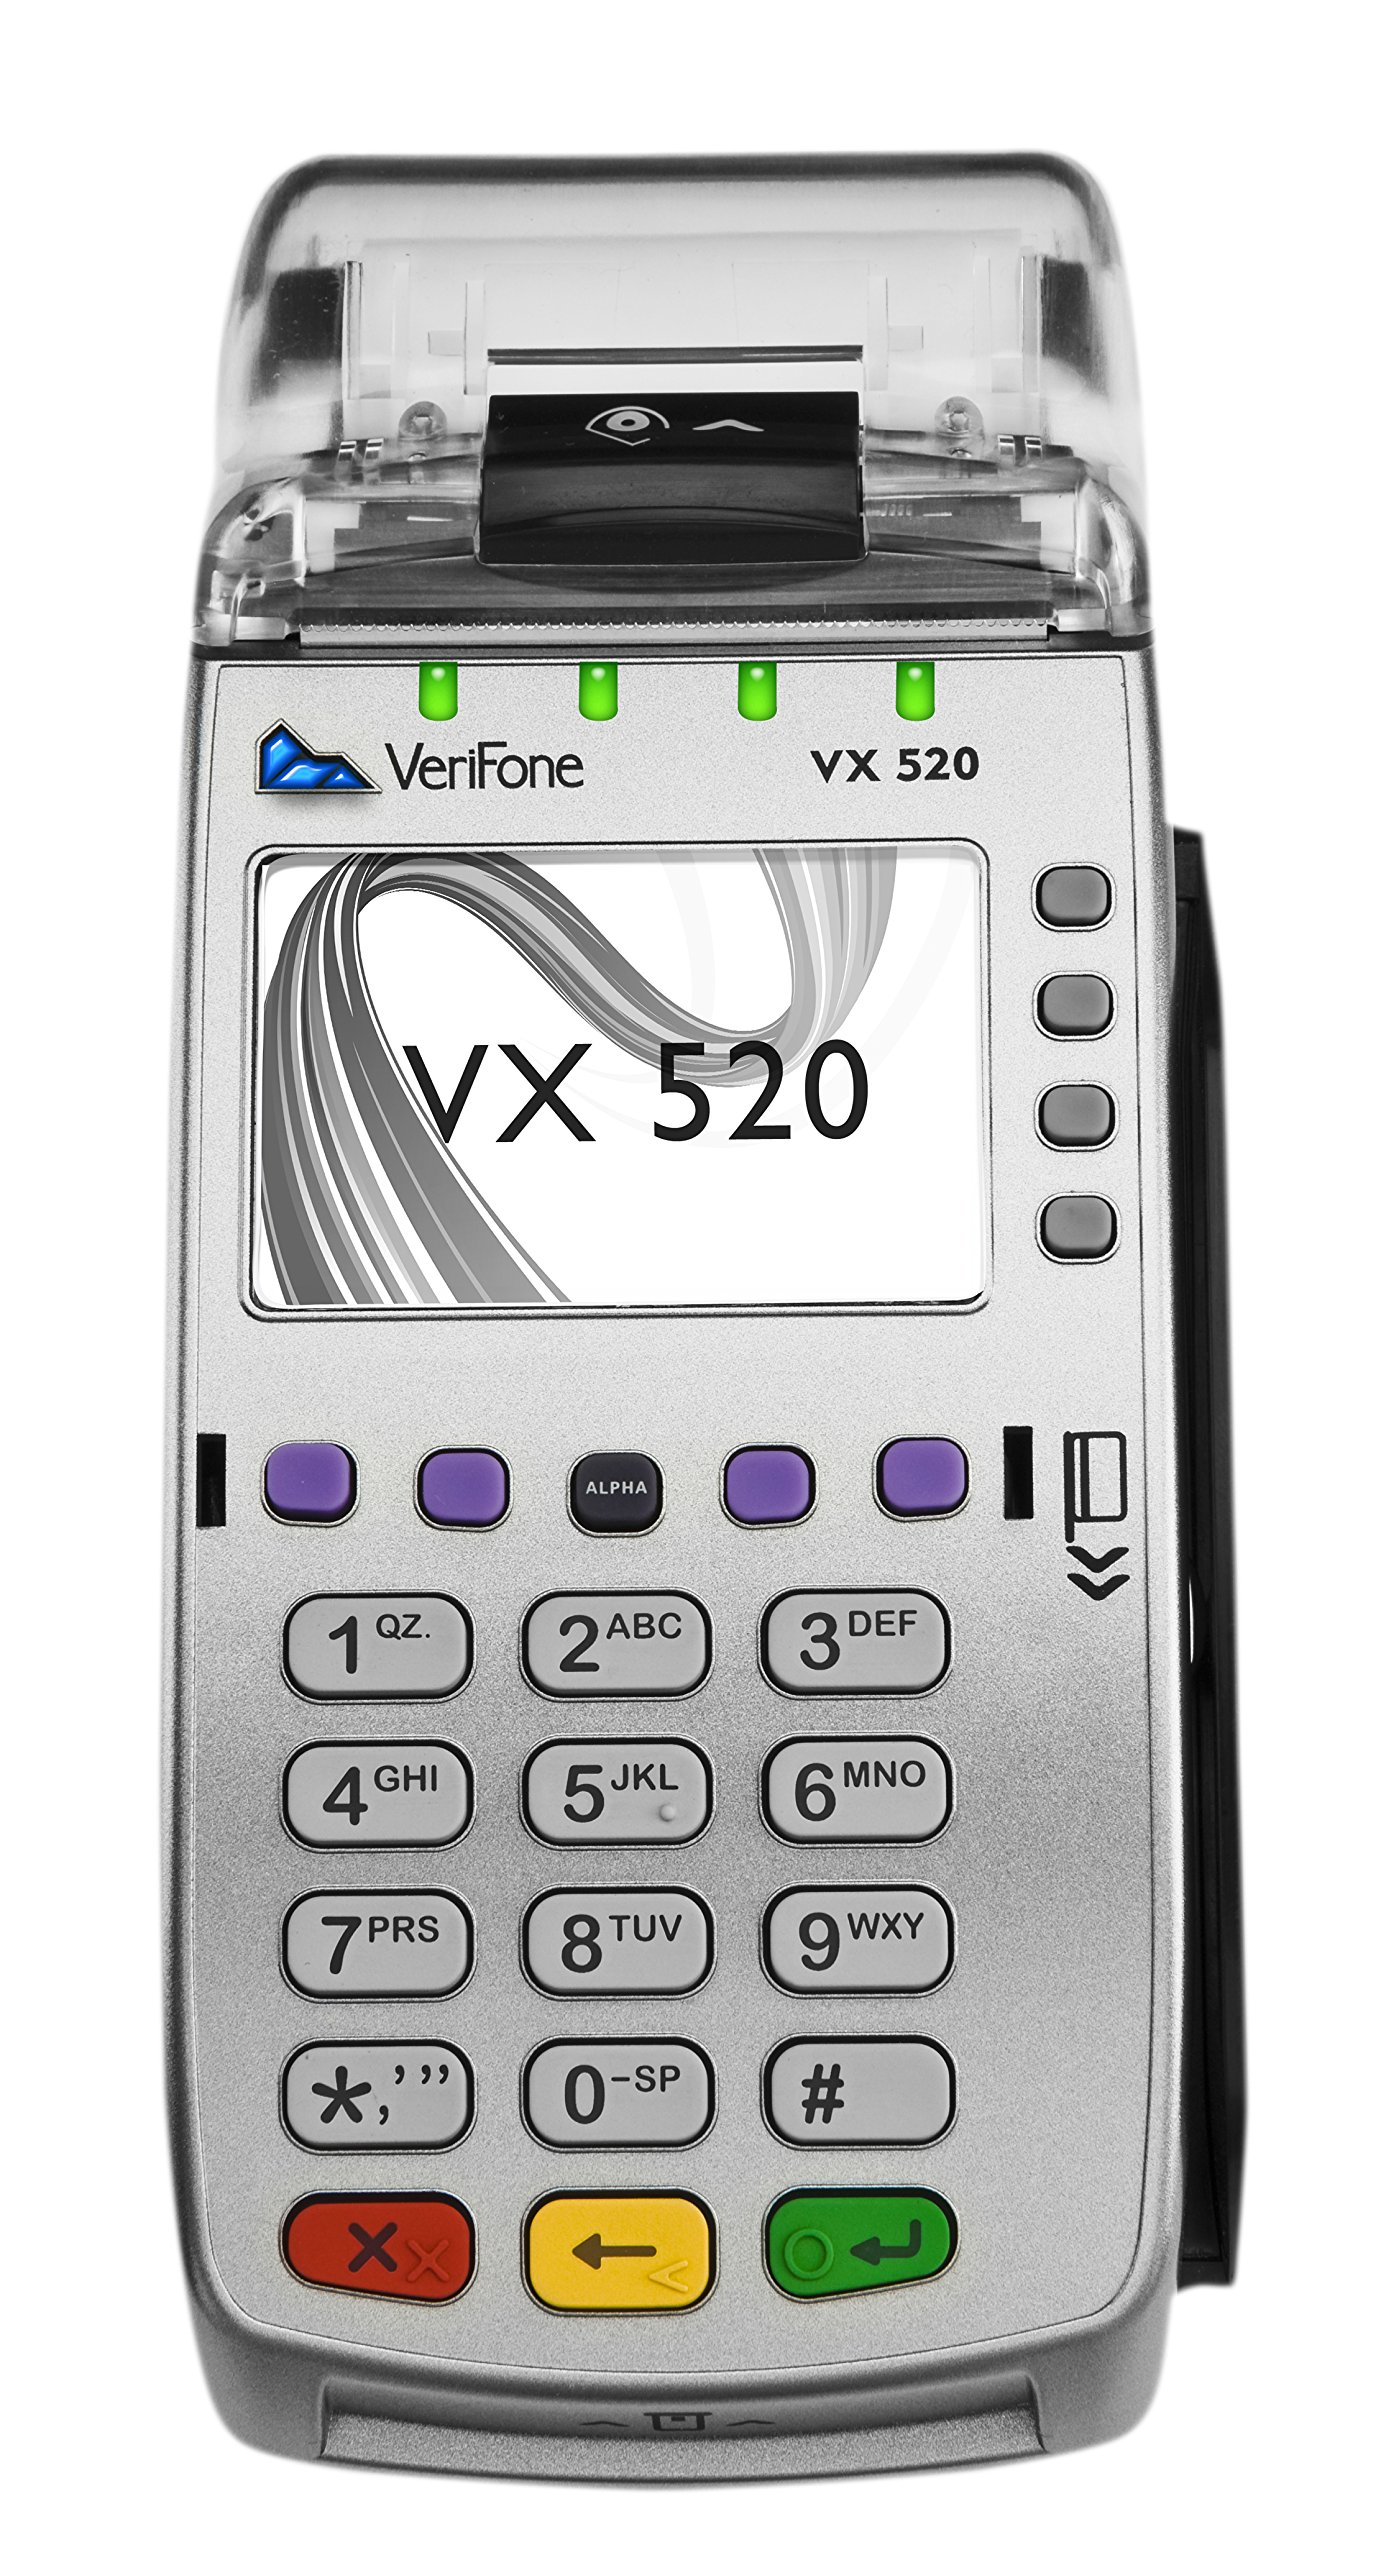 Verifone Vx520 EMV CTLS Terminal, Swivel Stand, Full Device Spill Cover and 2-1/4'' x 50' (24 Rolls) Thermal Paper by Verifone and Discount Credit Card Supply (Image #2)